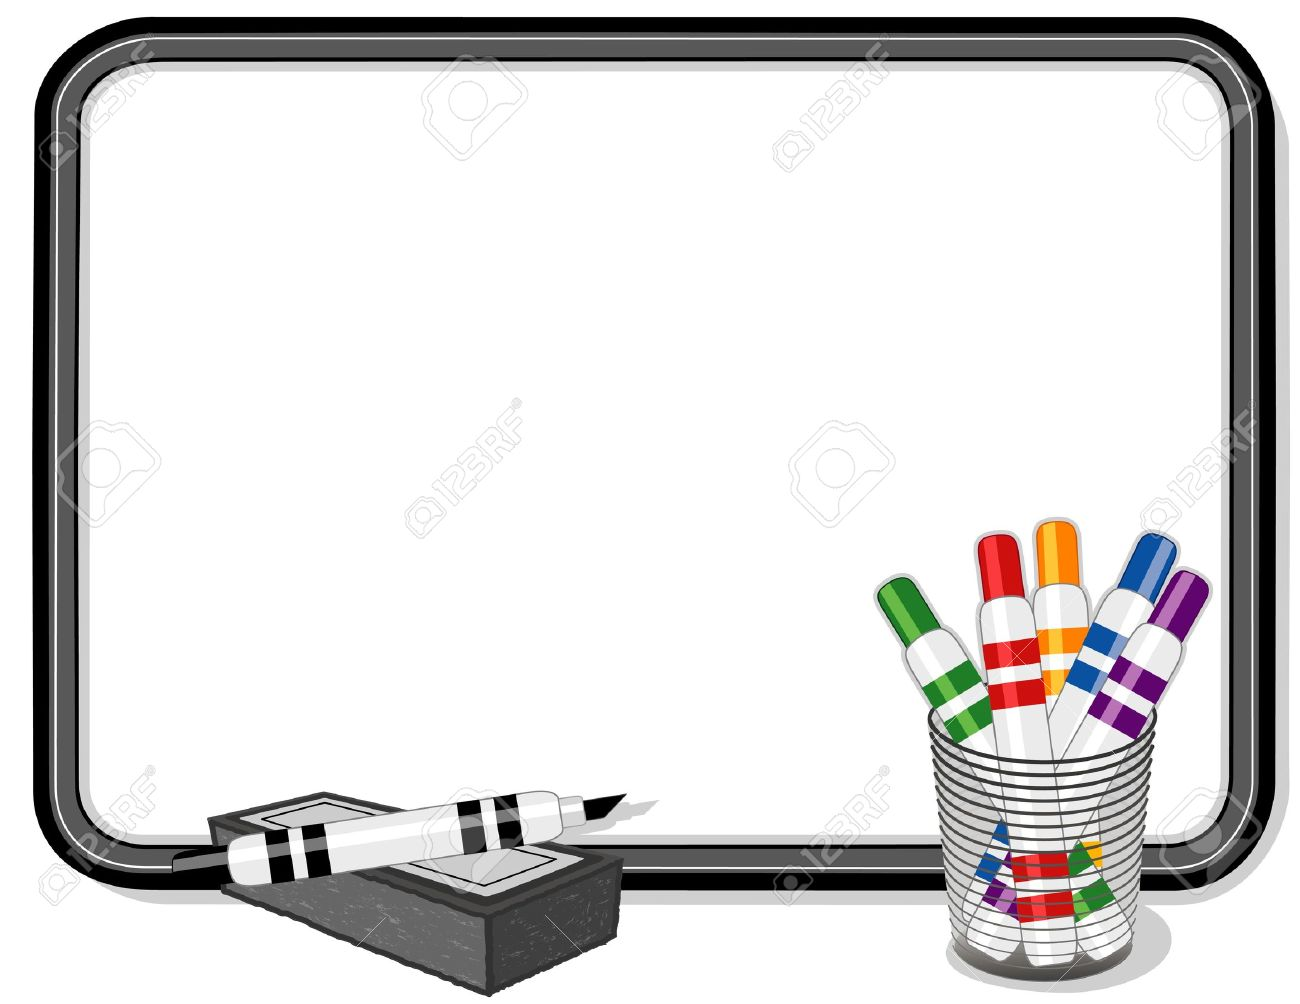 Whiteboard Background Vector - Whiteboard with